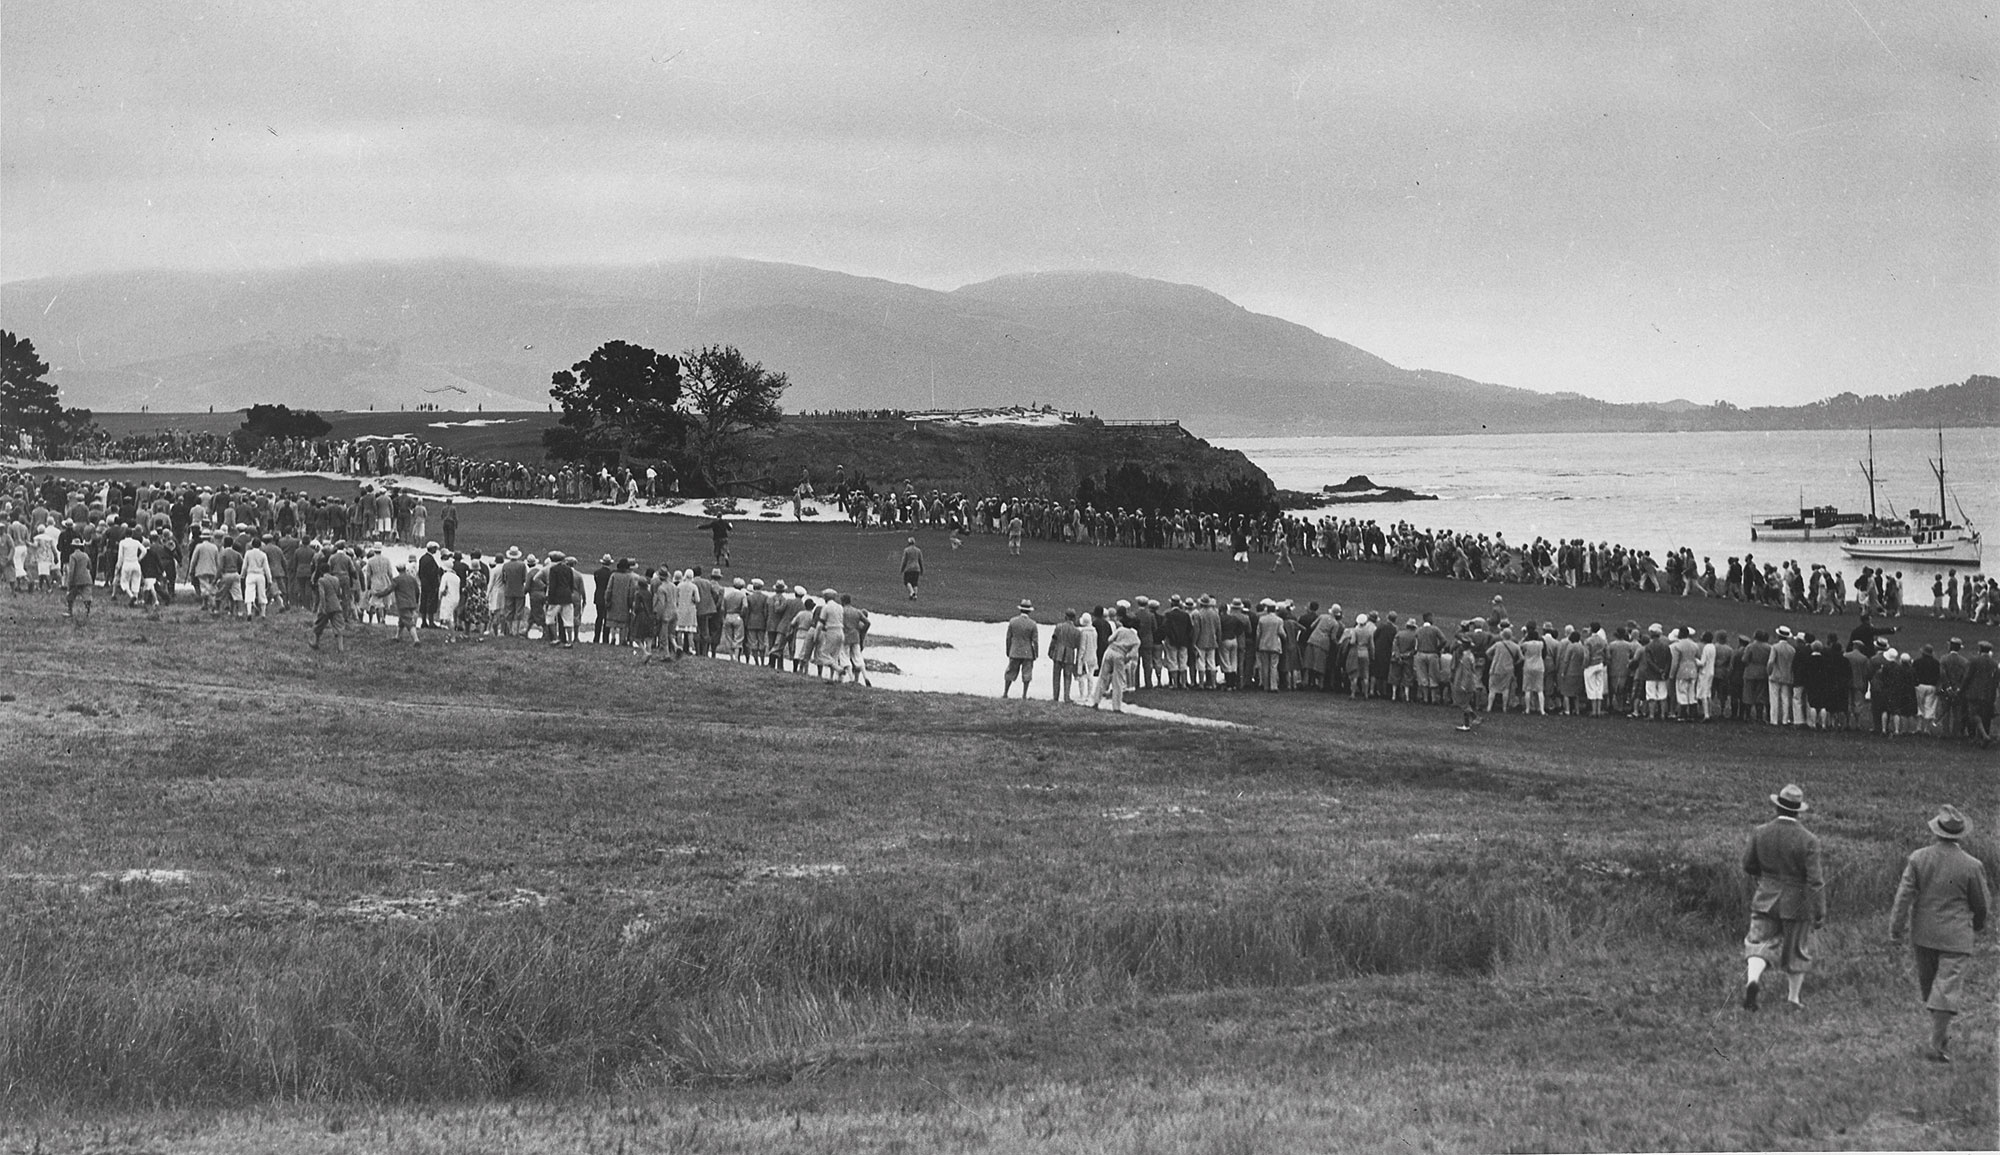 4th hole at Pebble Beach during 1929 U.S. Amateur